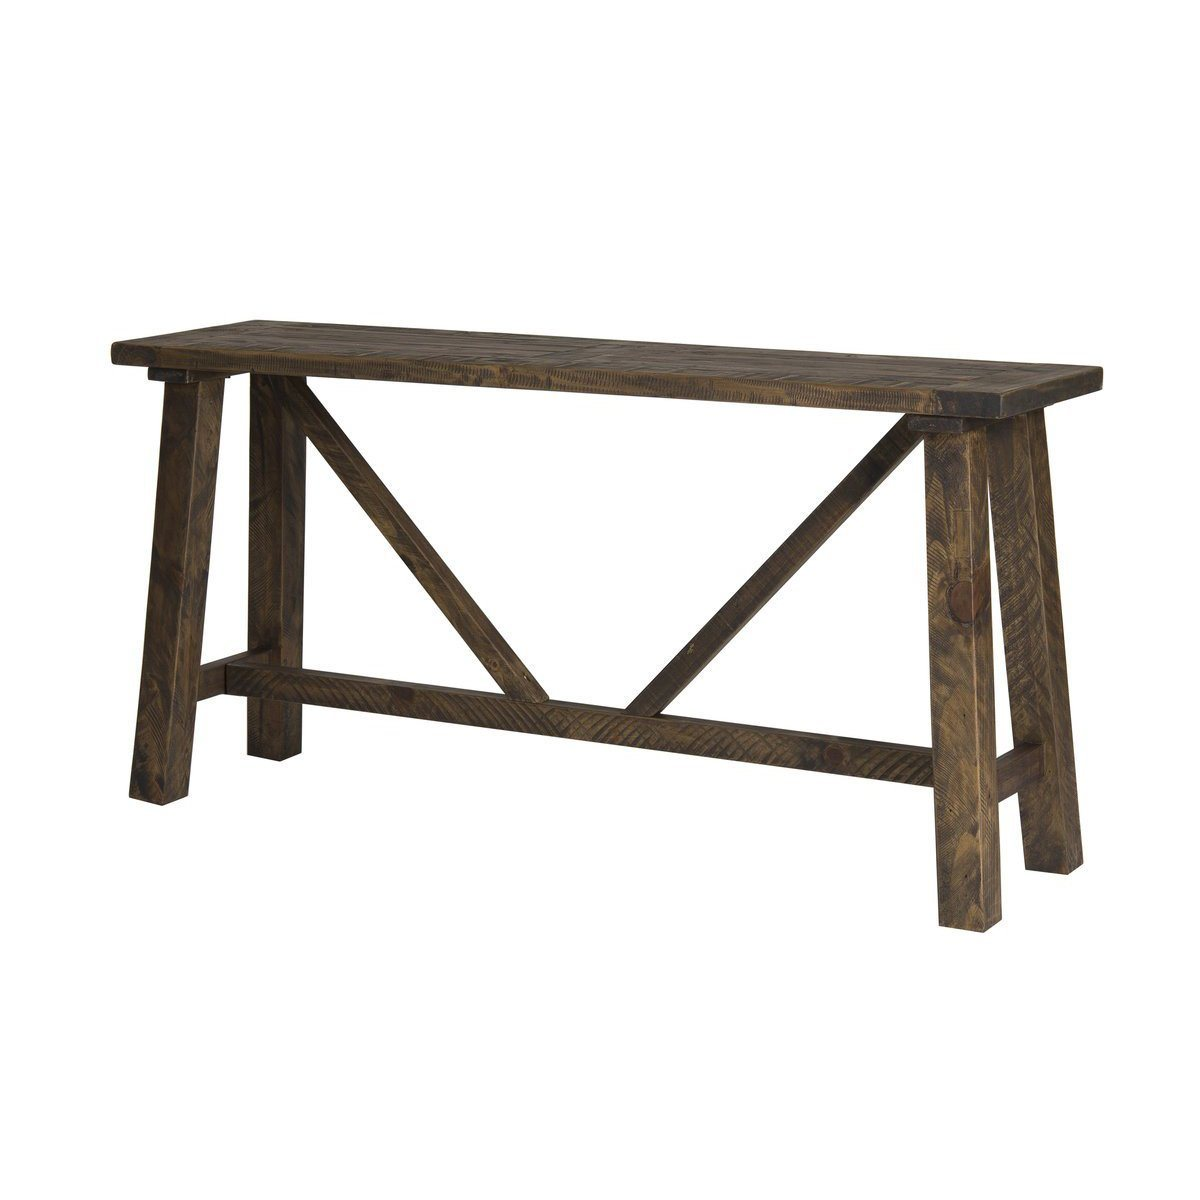 SOLID WOOD Console Table - Smokey Brown - Showhome Furniture